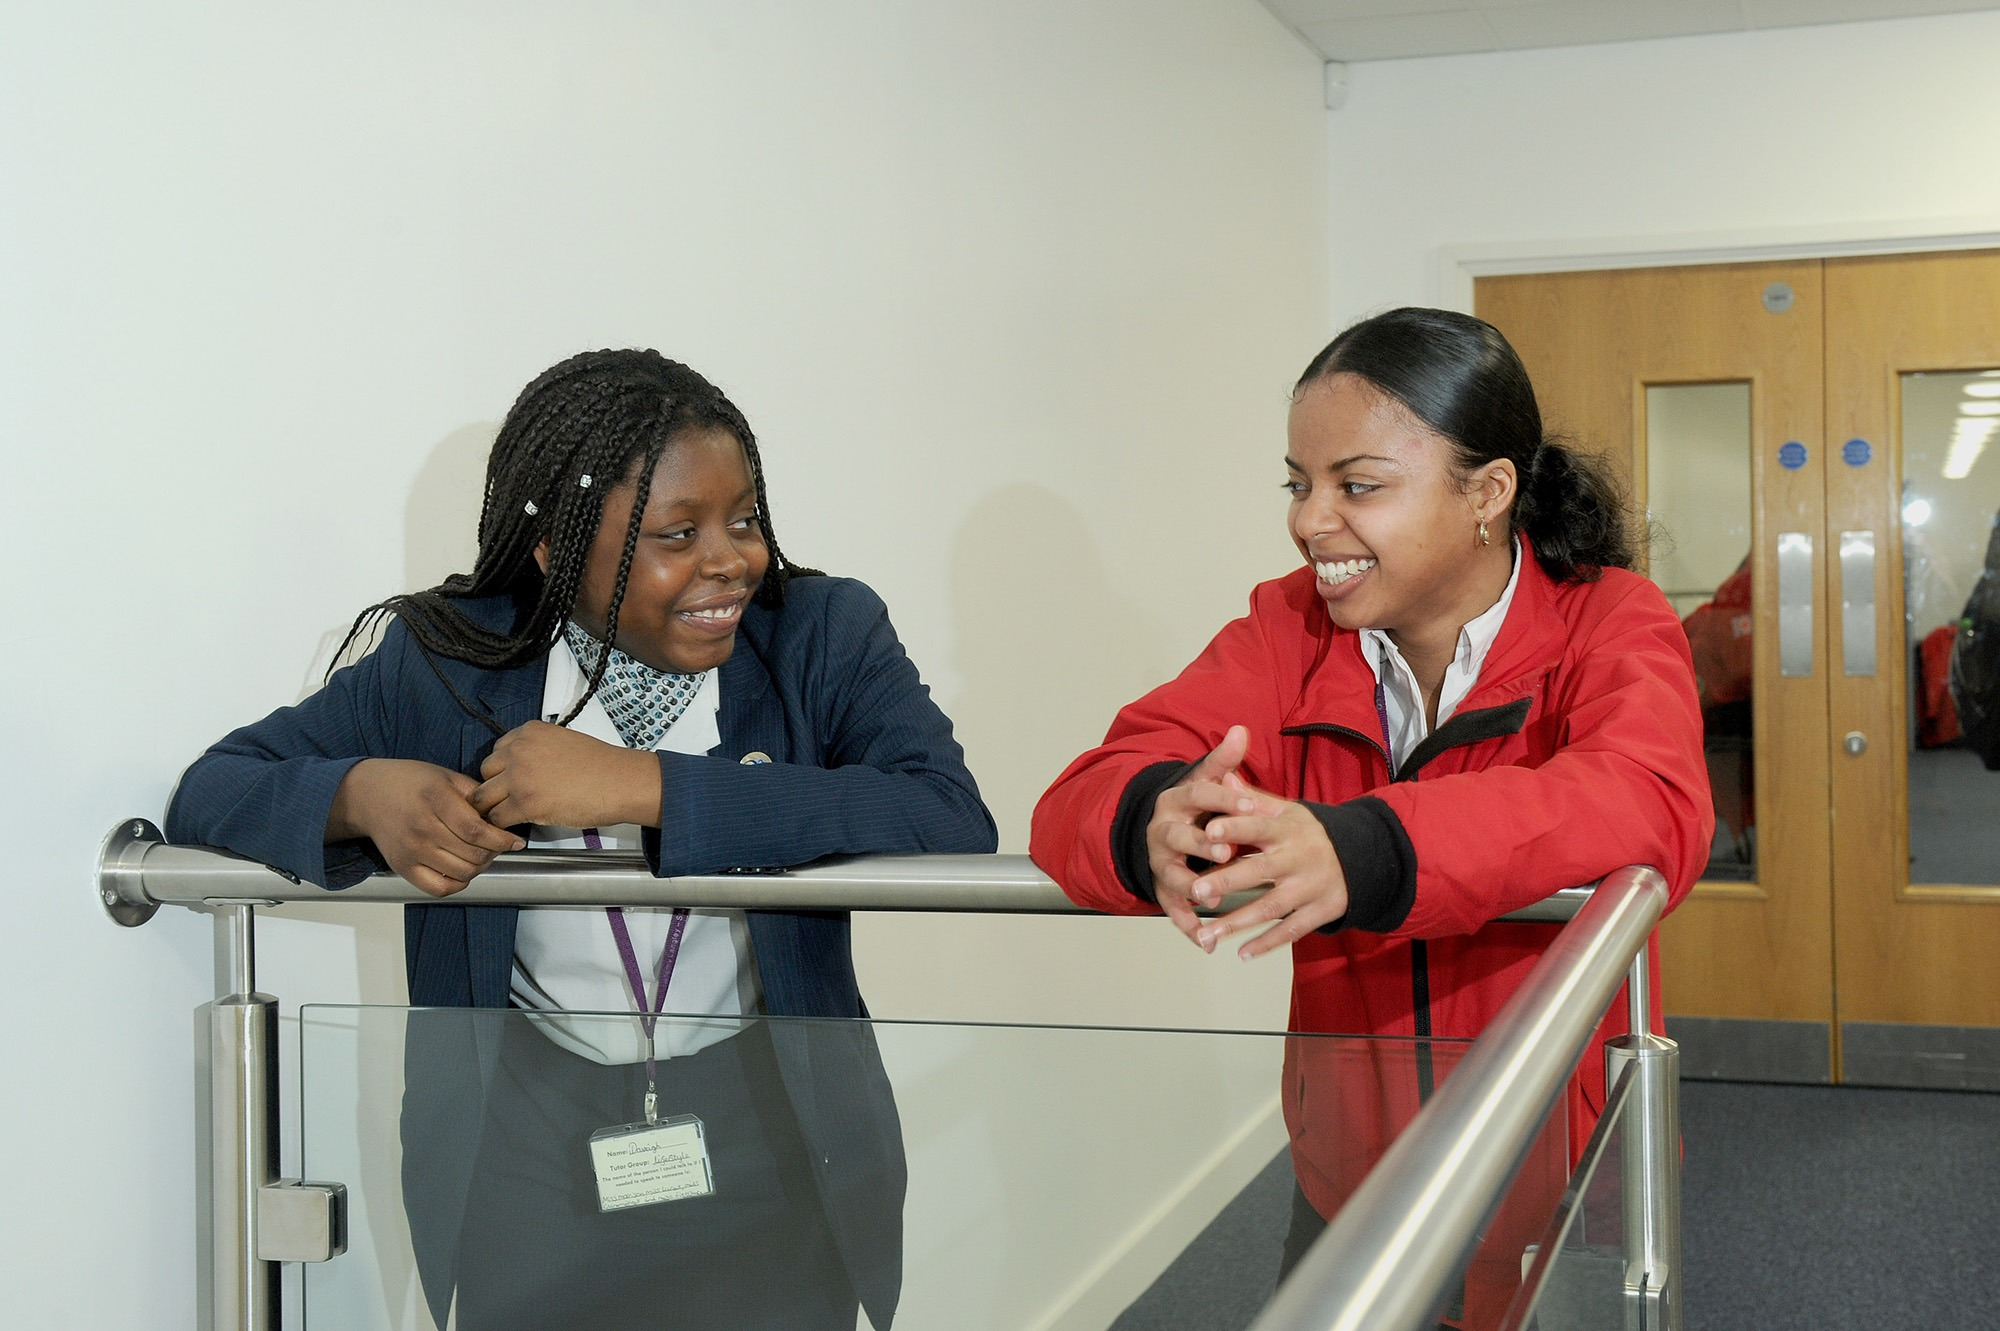 Volunteer mentor smiling with a pupil